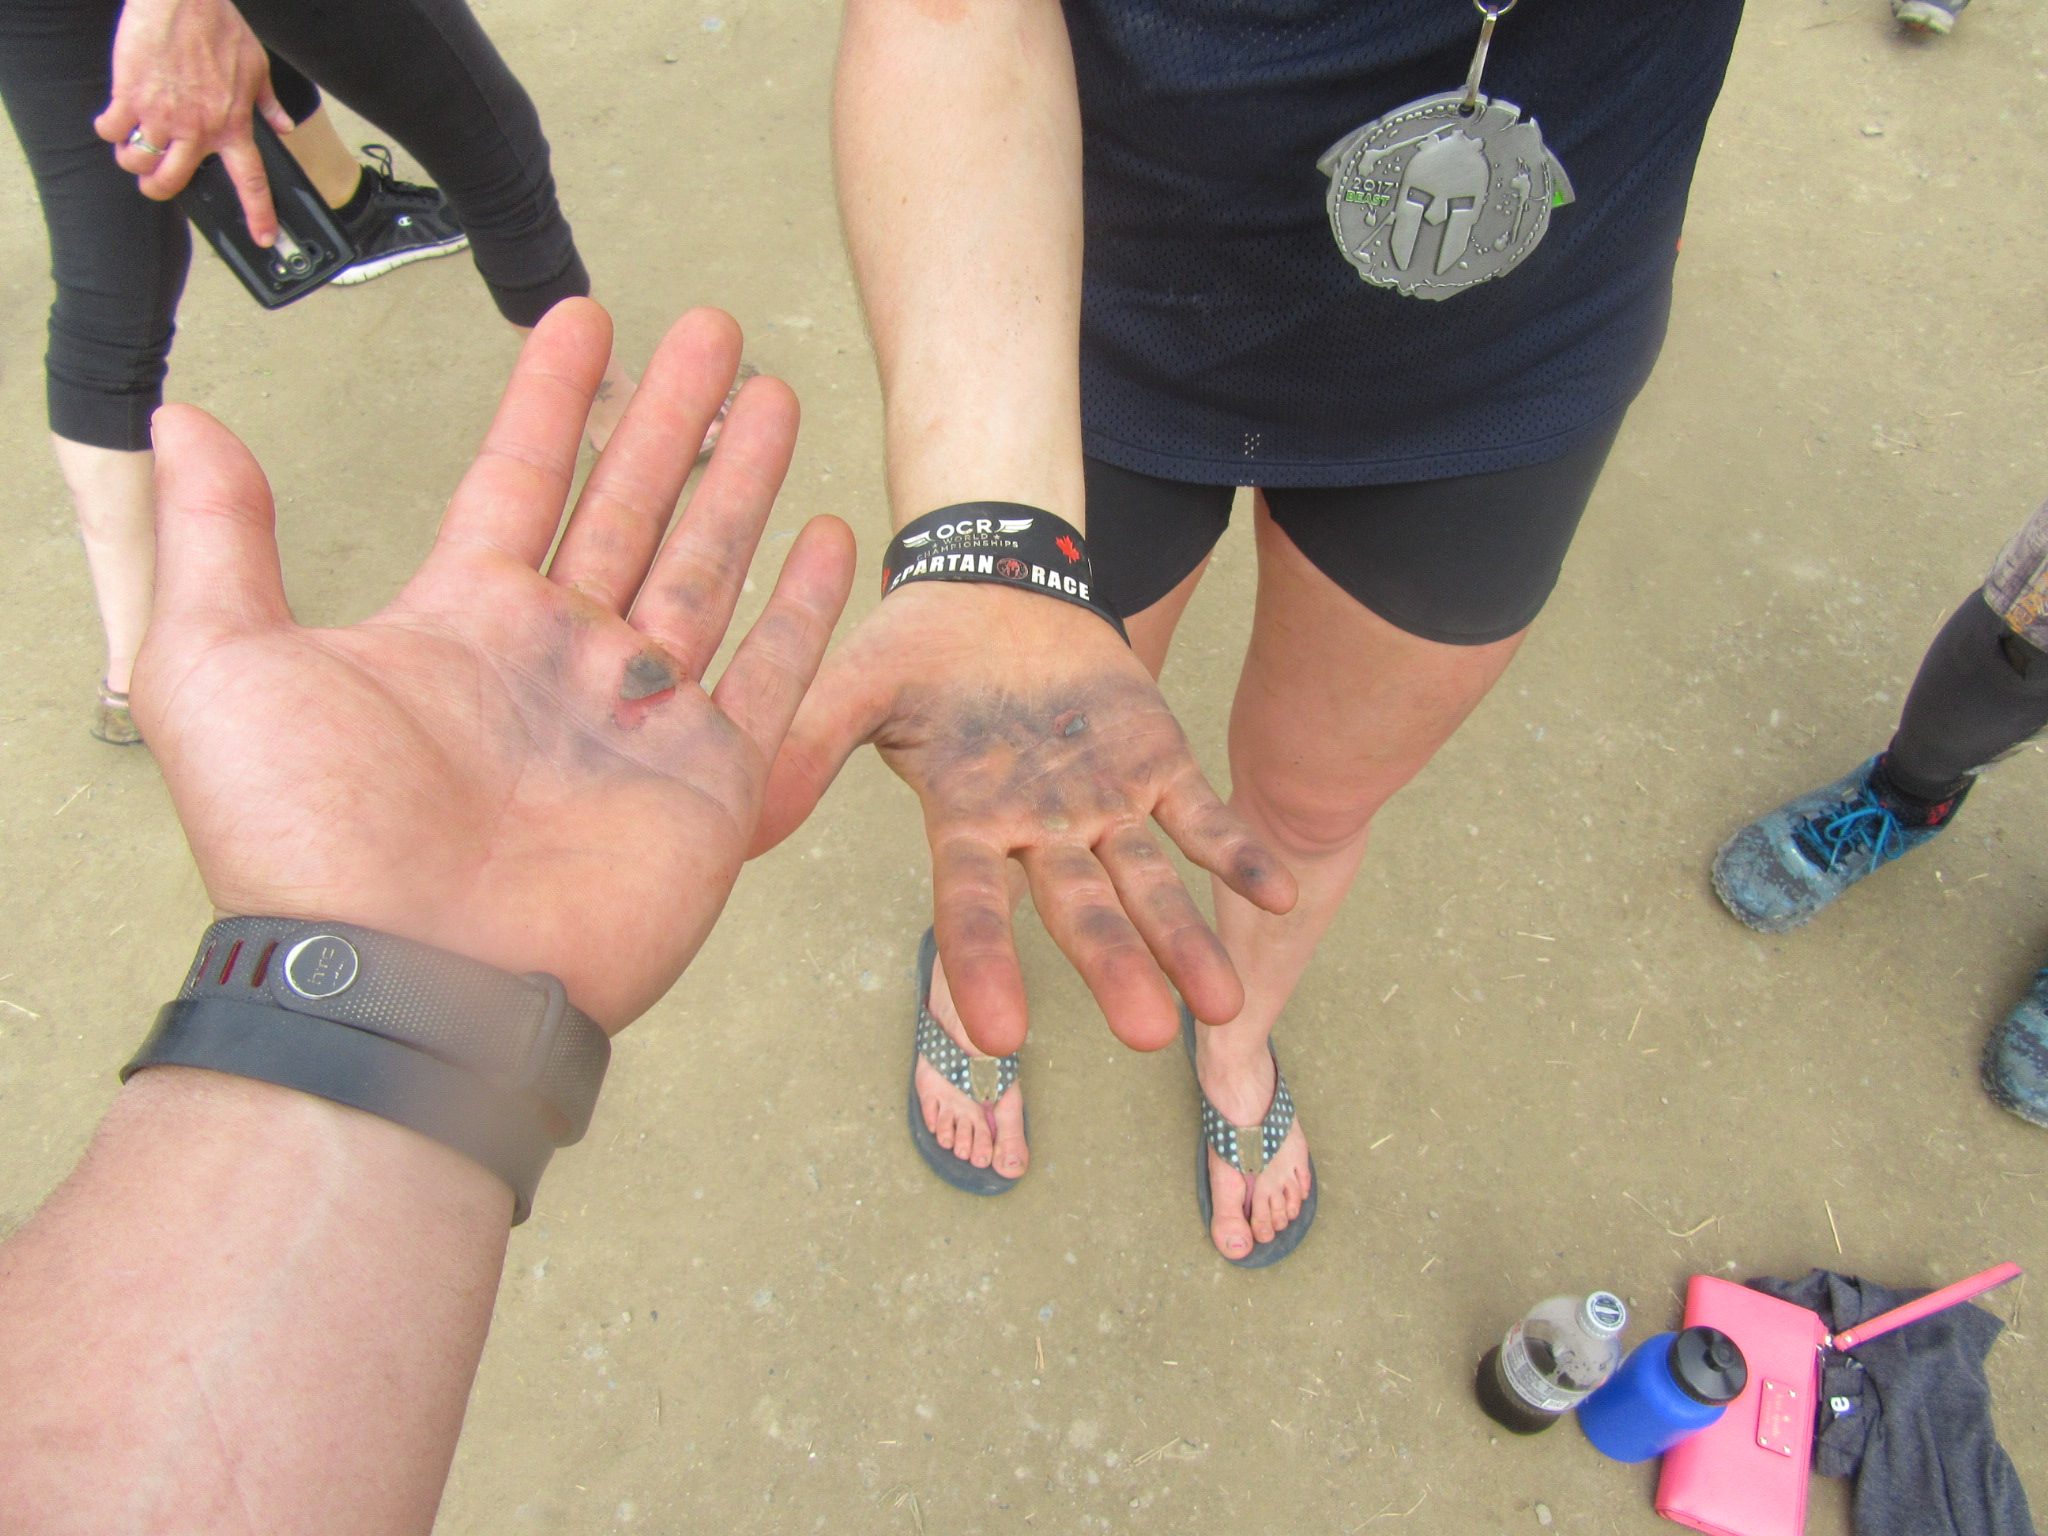 The Twister ripped Katie and I's hands.